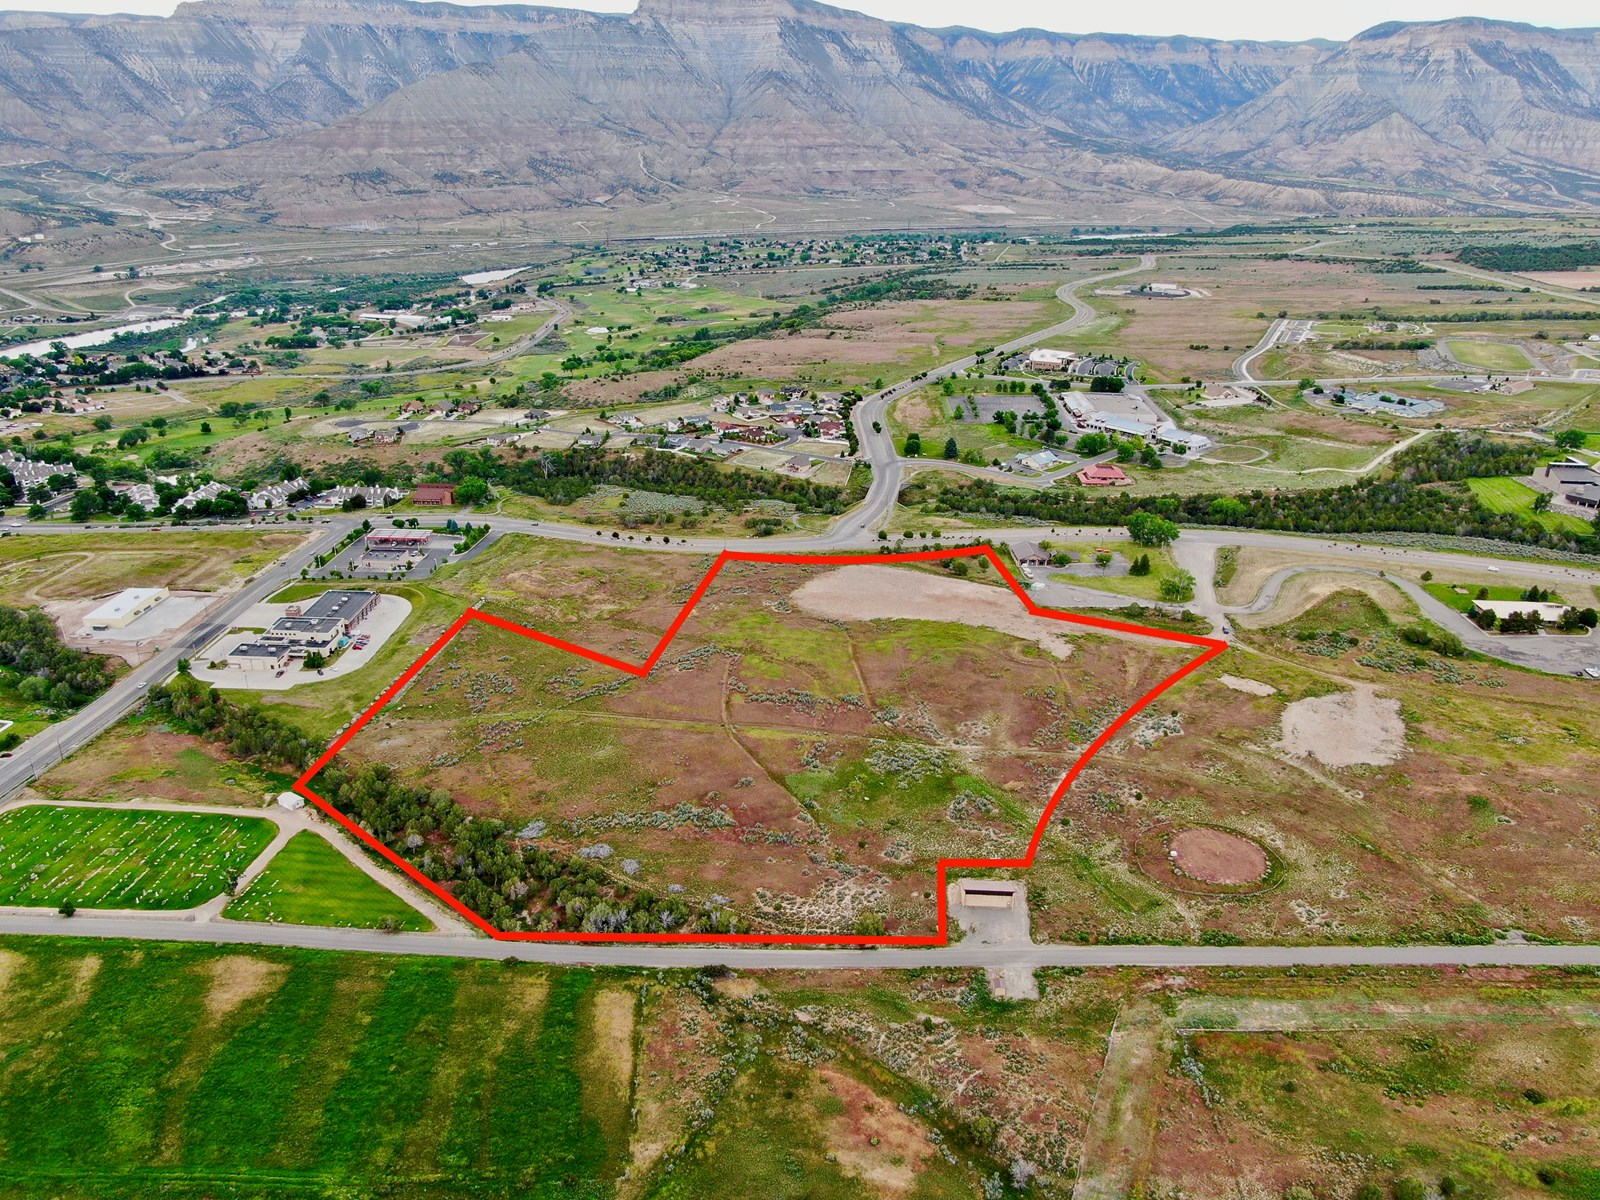 Residential Development Land For Sale Battlement Mesa CO